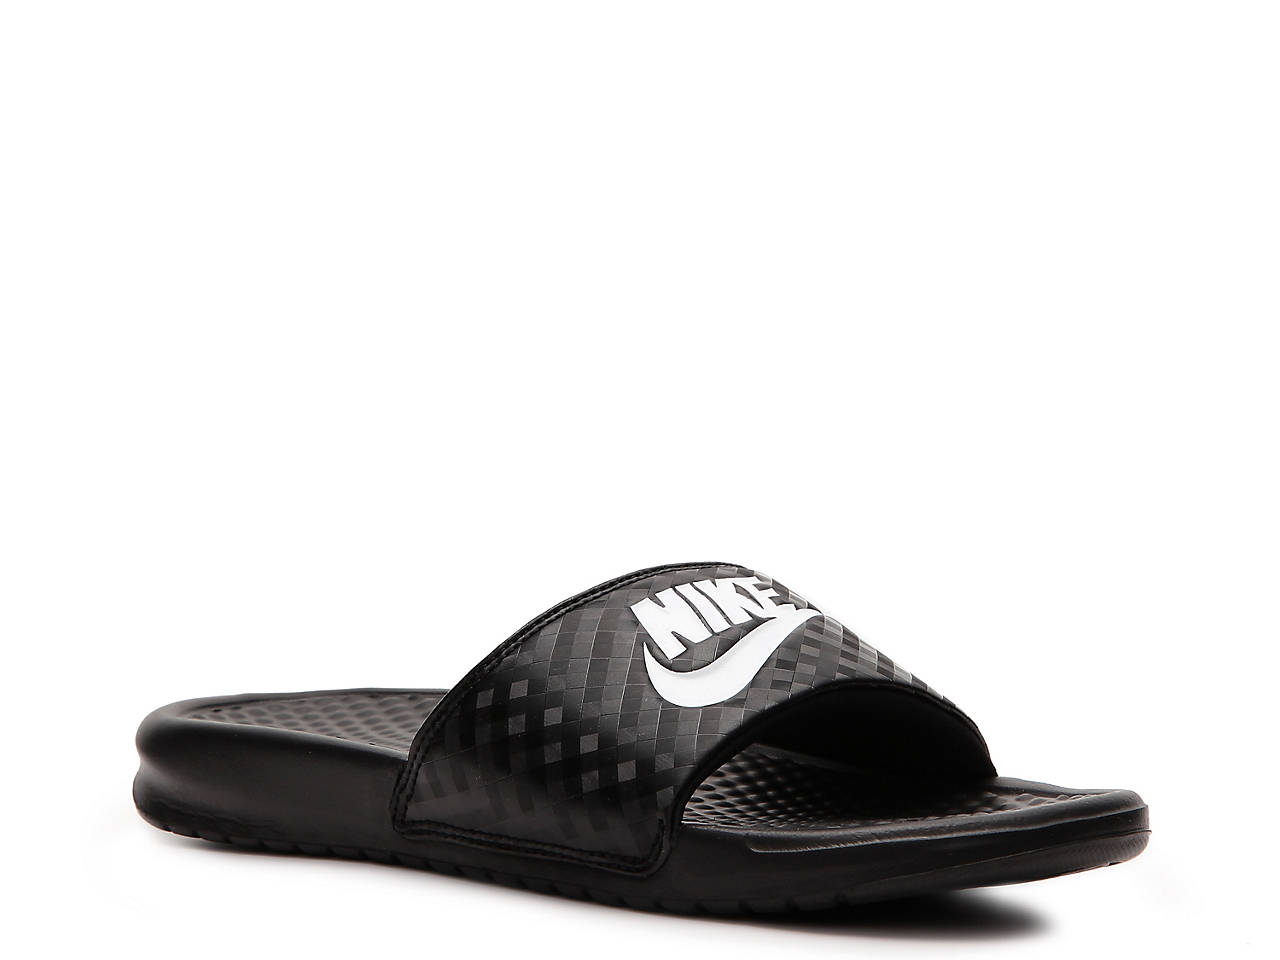 a7c1be6c2457 Nike Benassi Slide Sandal - Women s Women s Shoes